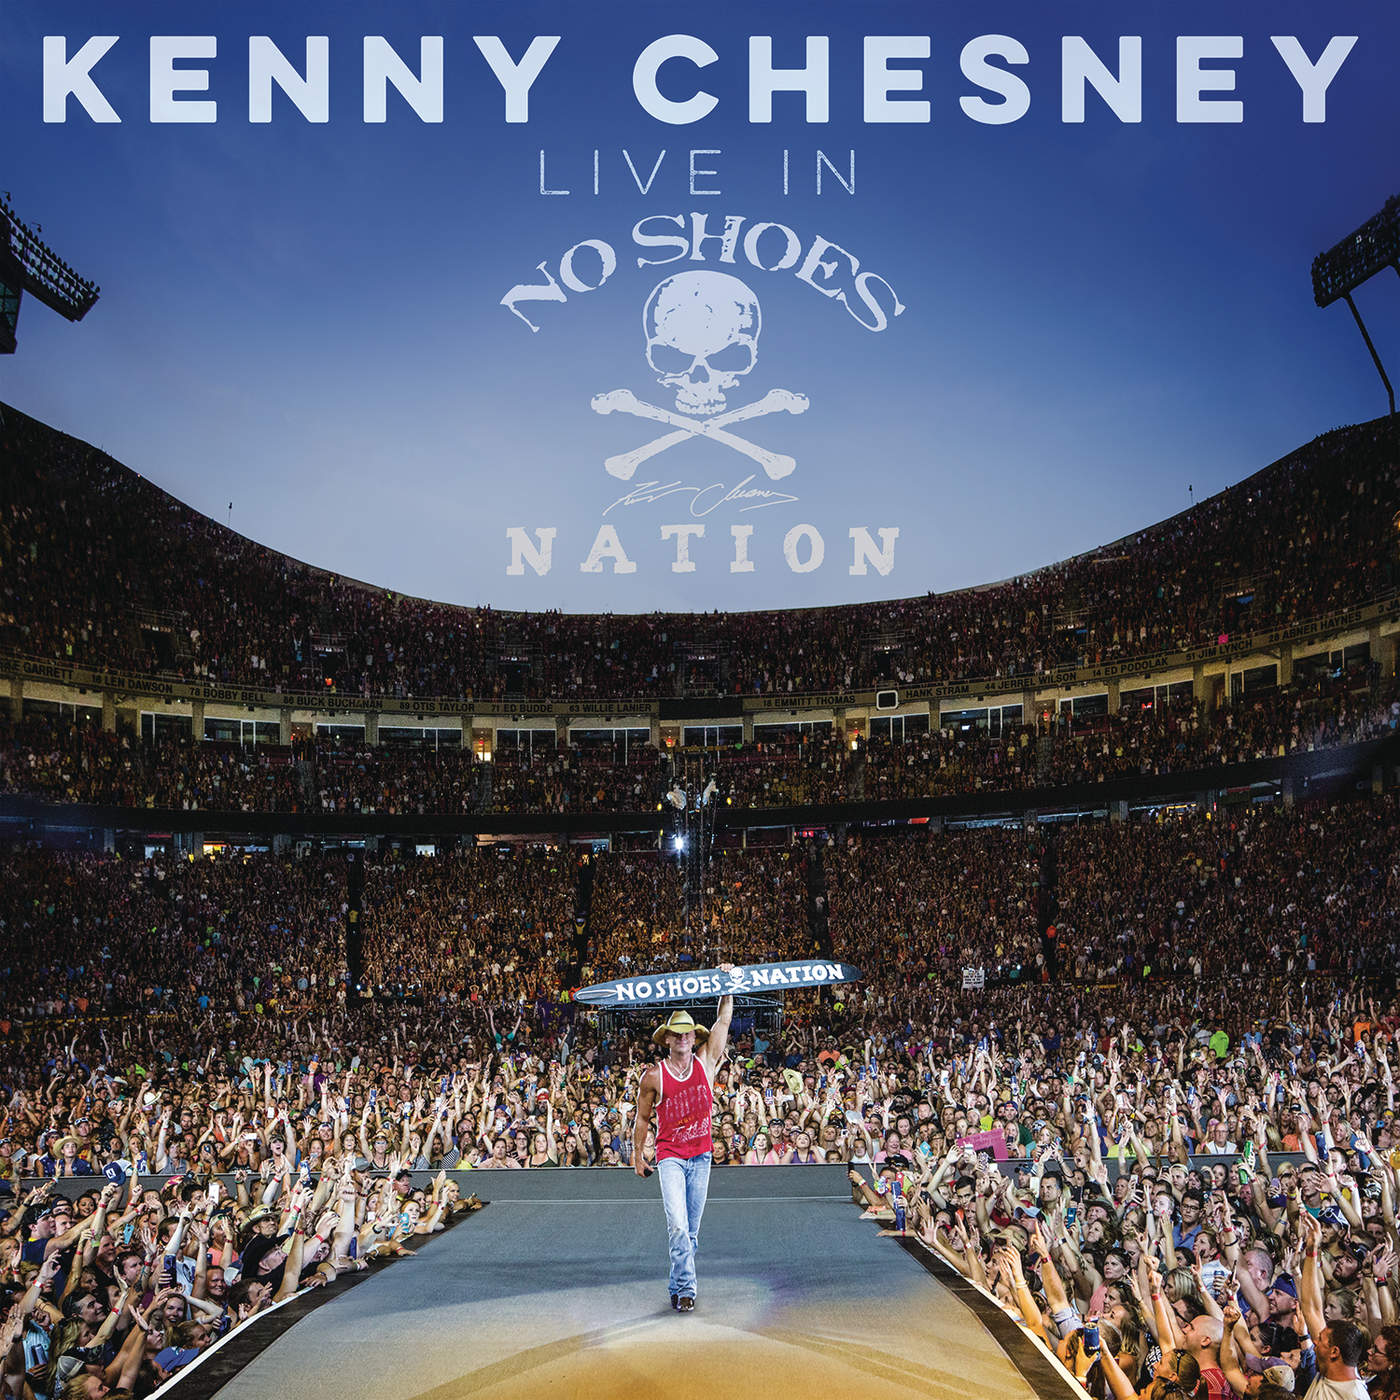 Kenny Chesney - Big Star (with Taylor Swift) [Live] - Single